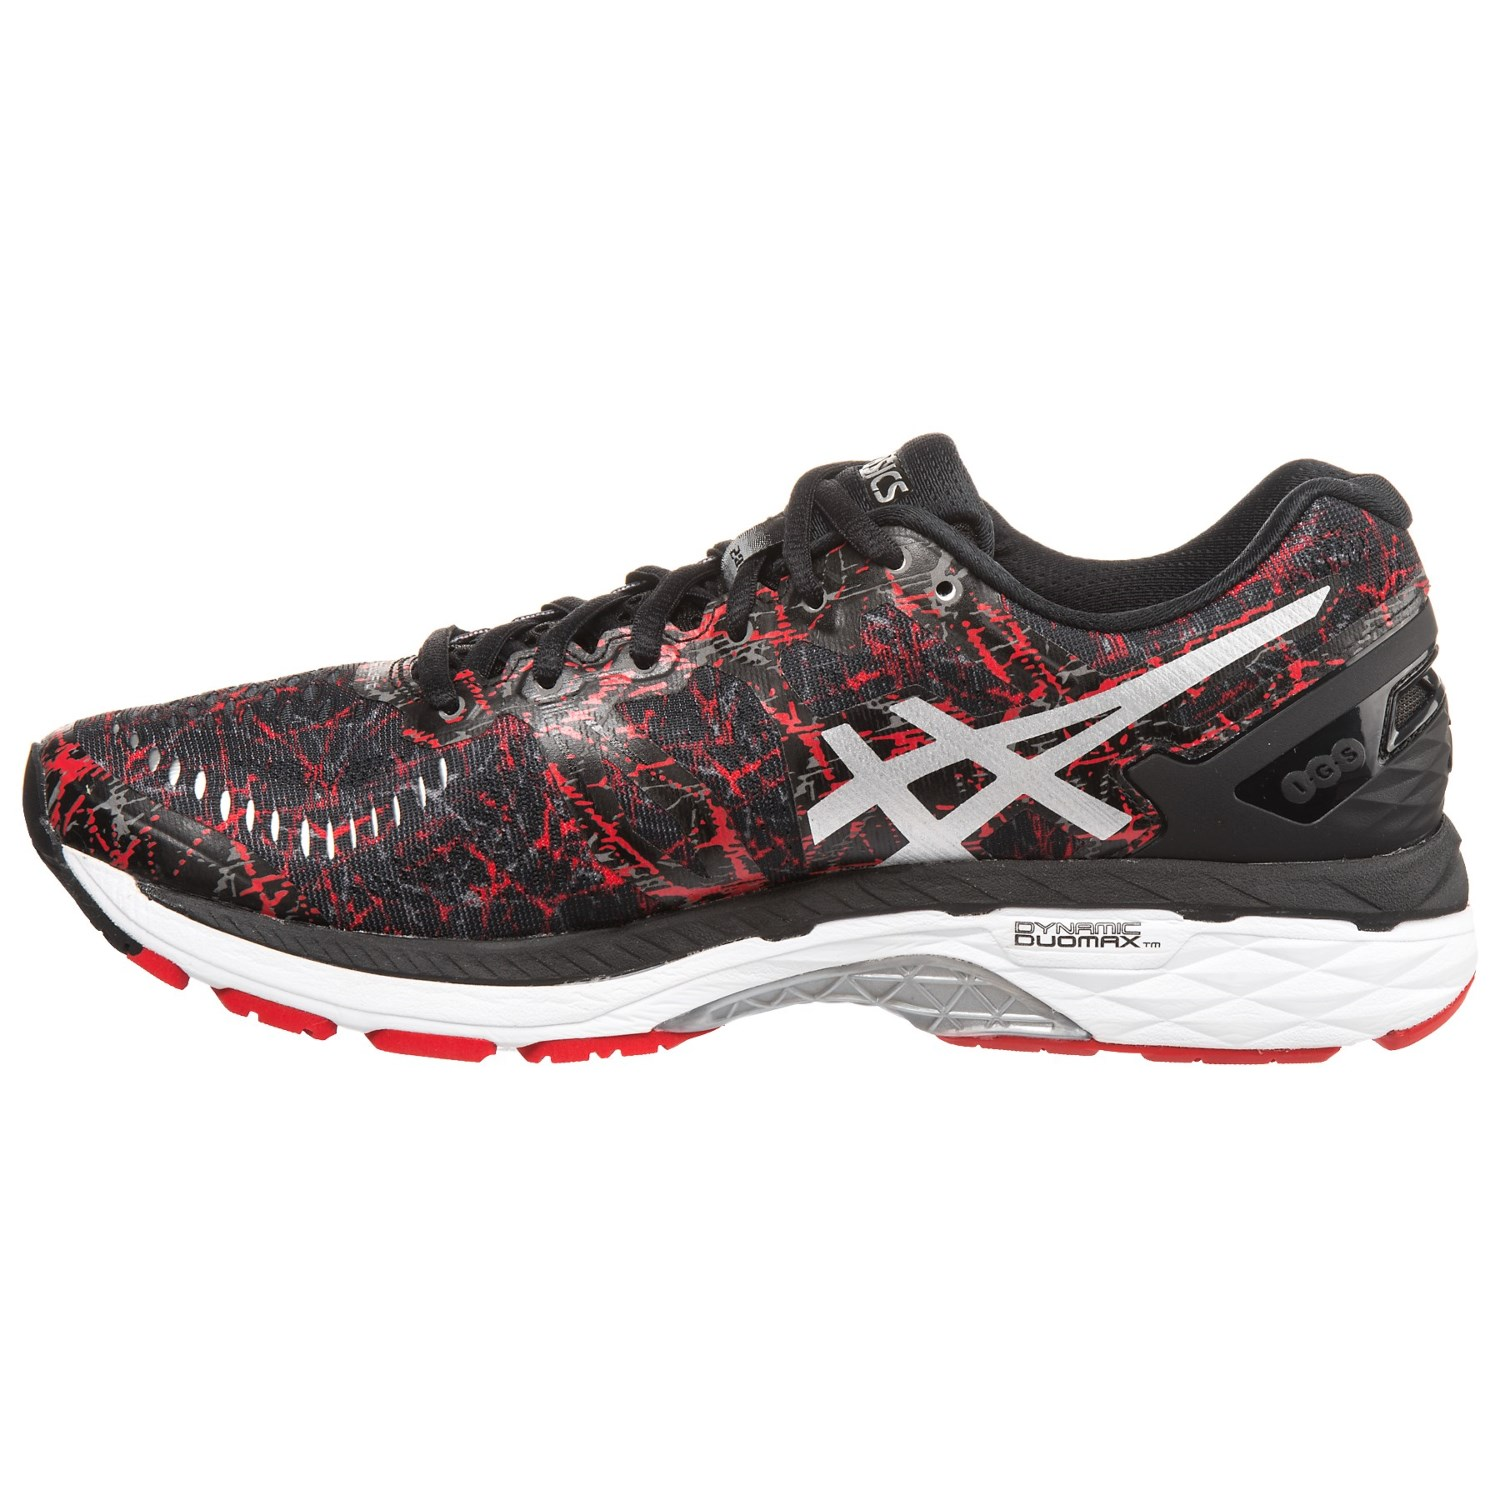 Asics Gel Kayano Asics Gel Kayano 23 Running Shoes For Men Save 56